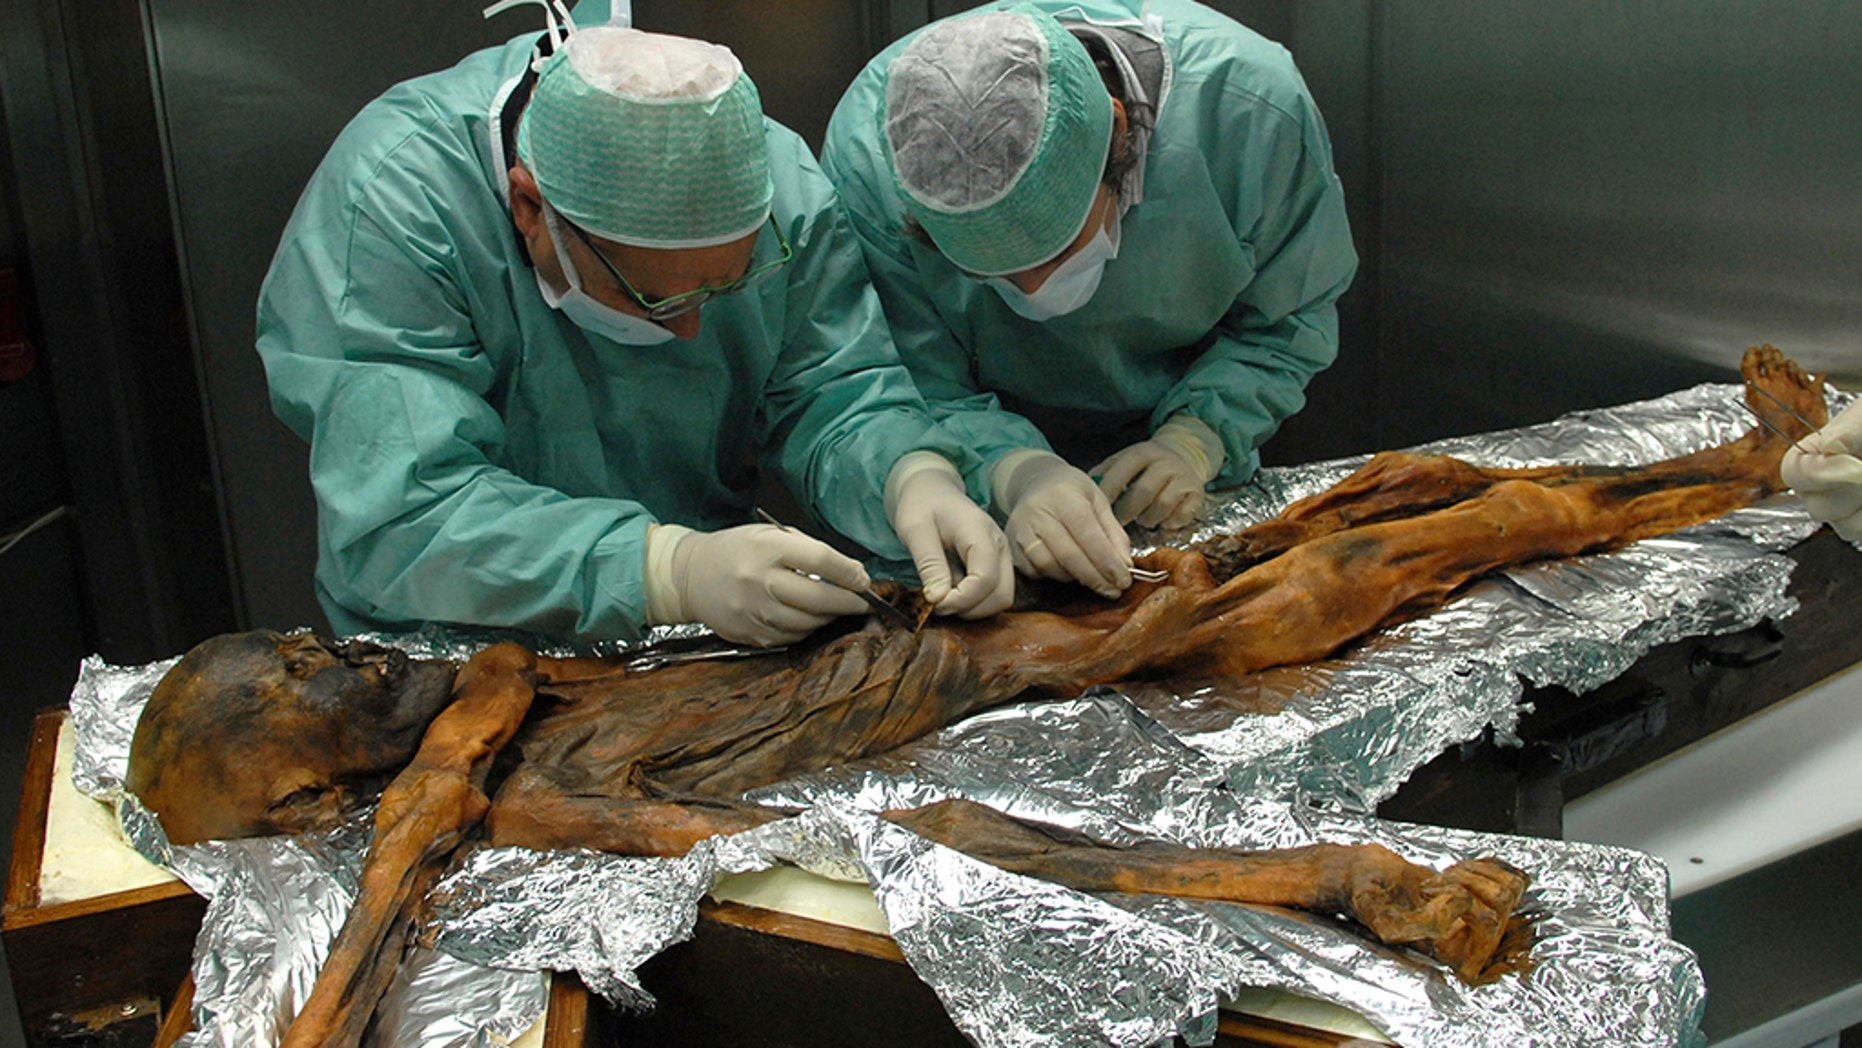 In this November 2010 photo provided by the South Tyrol Museum of Archaeology, researchers examine the body of a frozen hunter known as Oetzi the Iceman to sample his stomach contents in Bolzano, Italy.